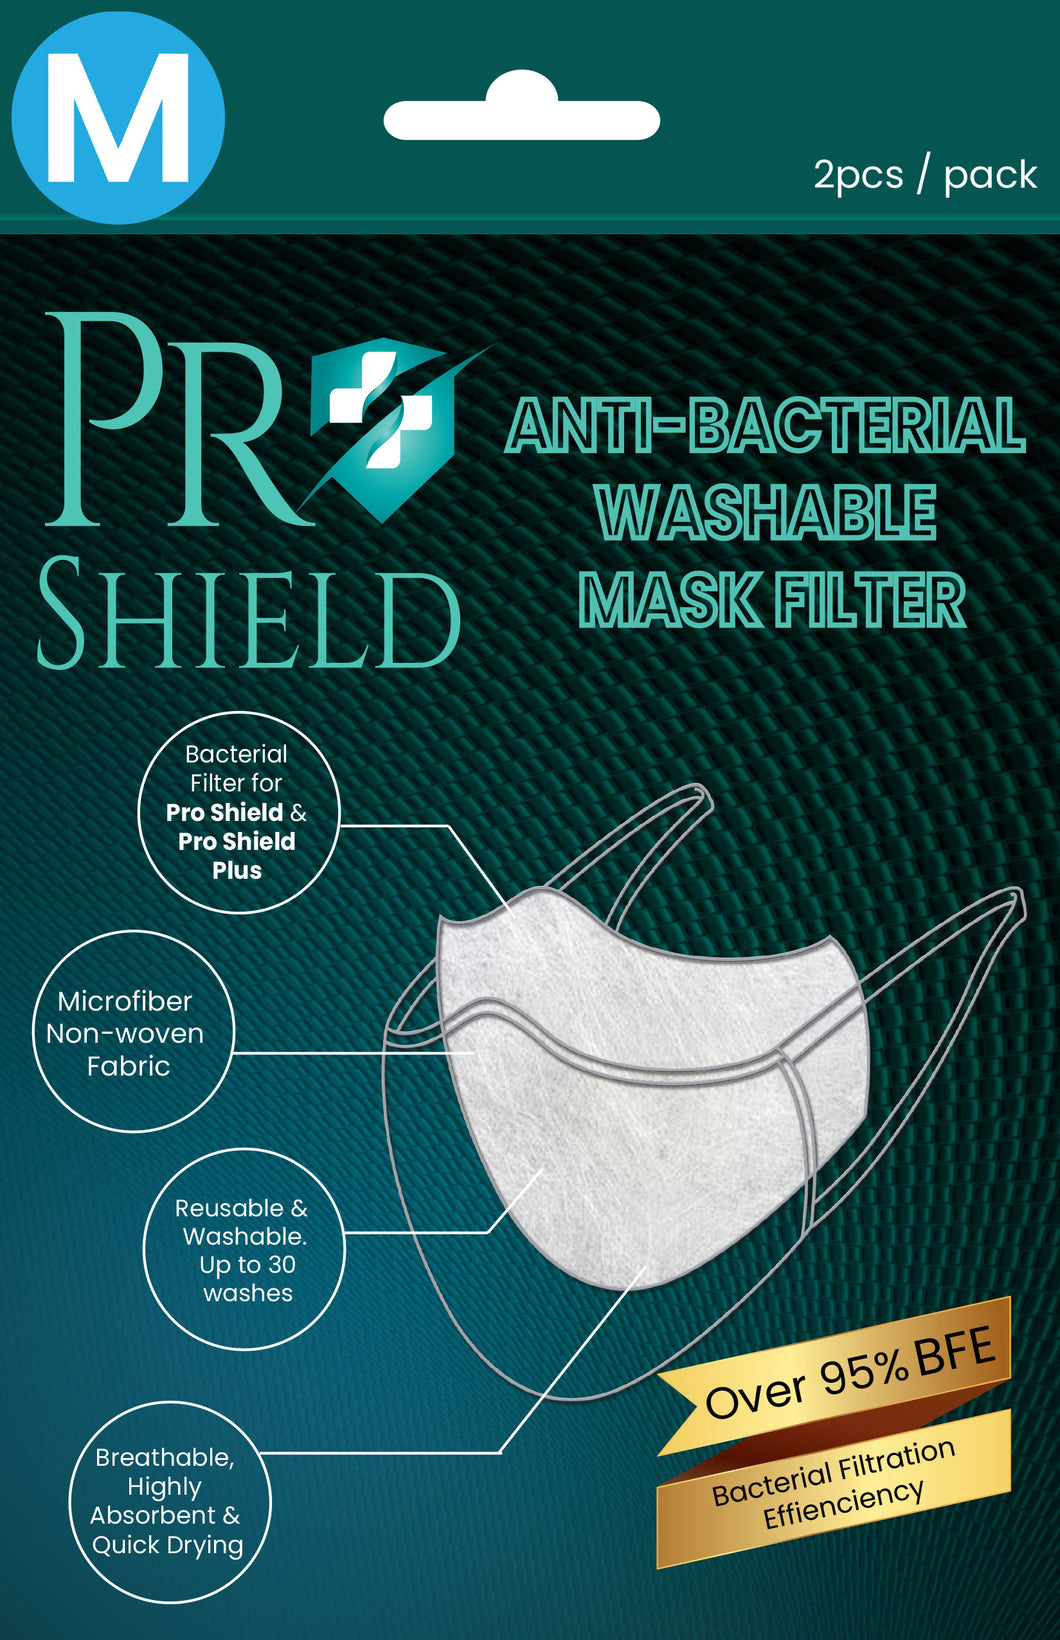 M size | ProShield Antibacterial Reusable Nanofiber Filter (2 sheets/pack)